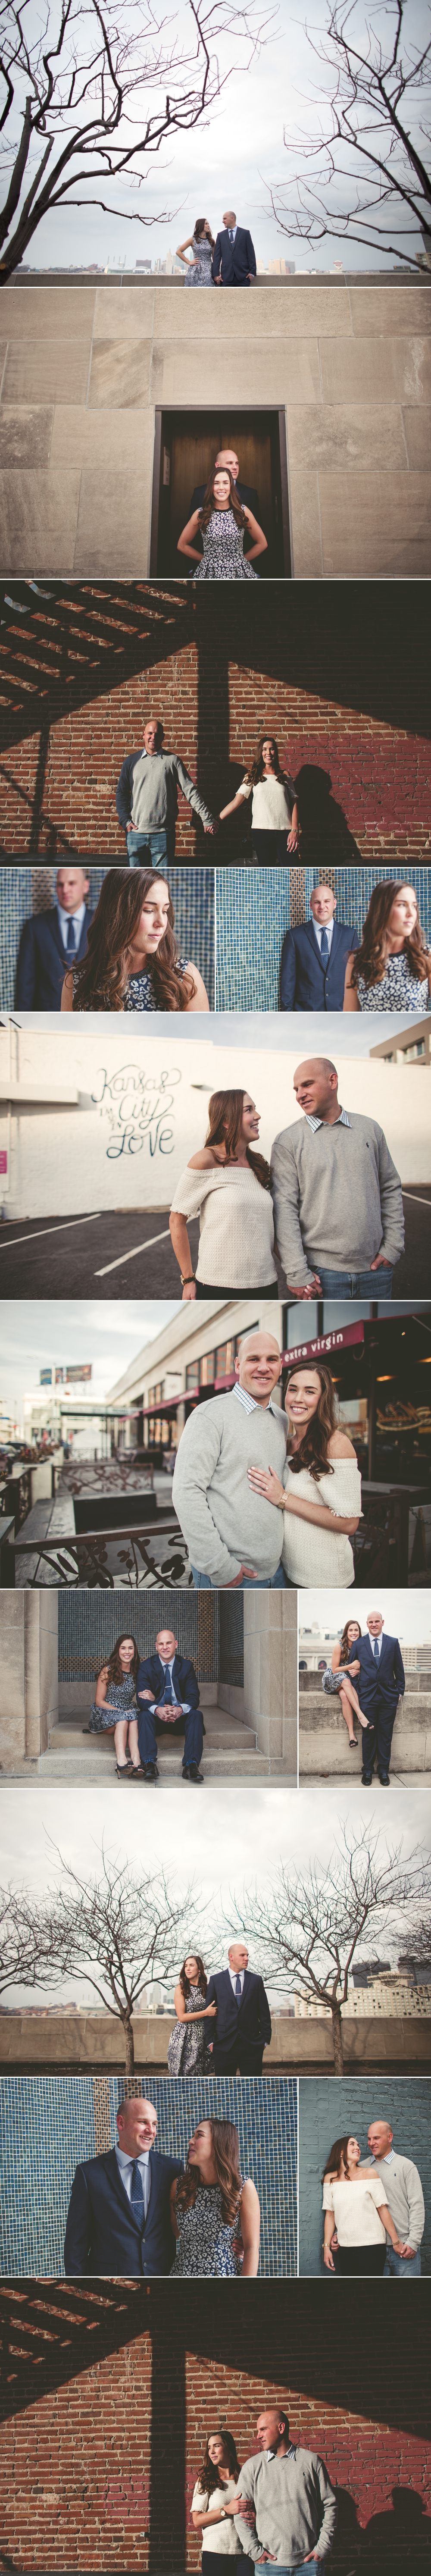 jason_domingues_photography_best_kansas_city_wedding_photographer_kc_engagement_session.jpg